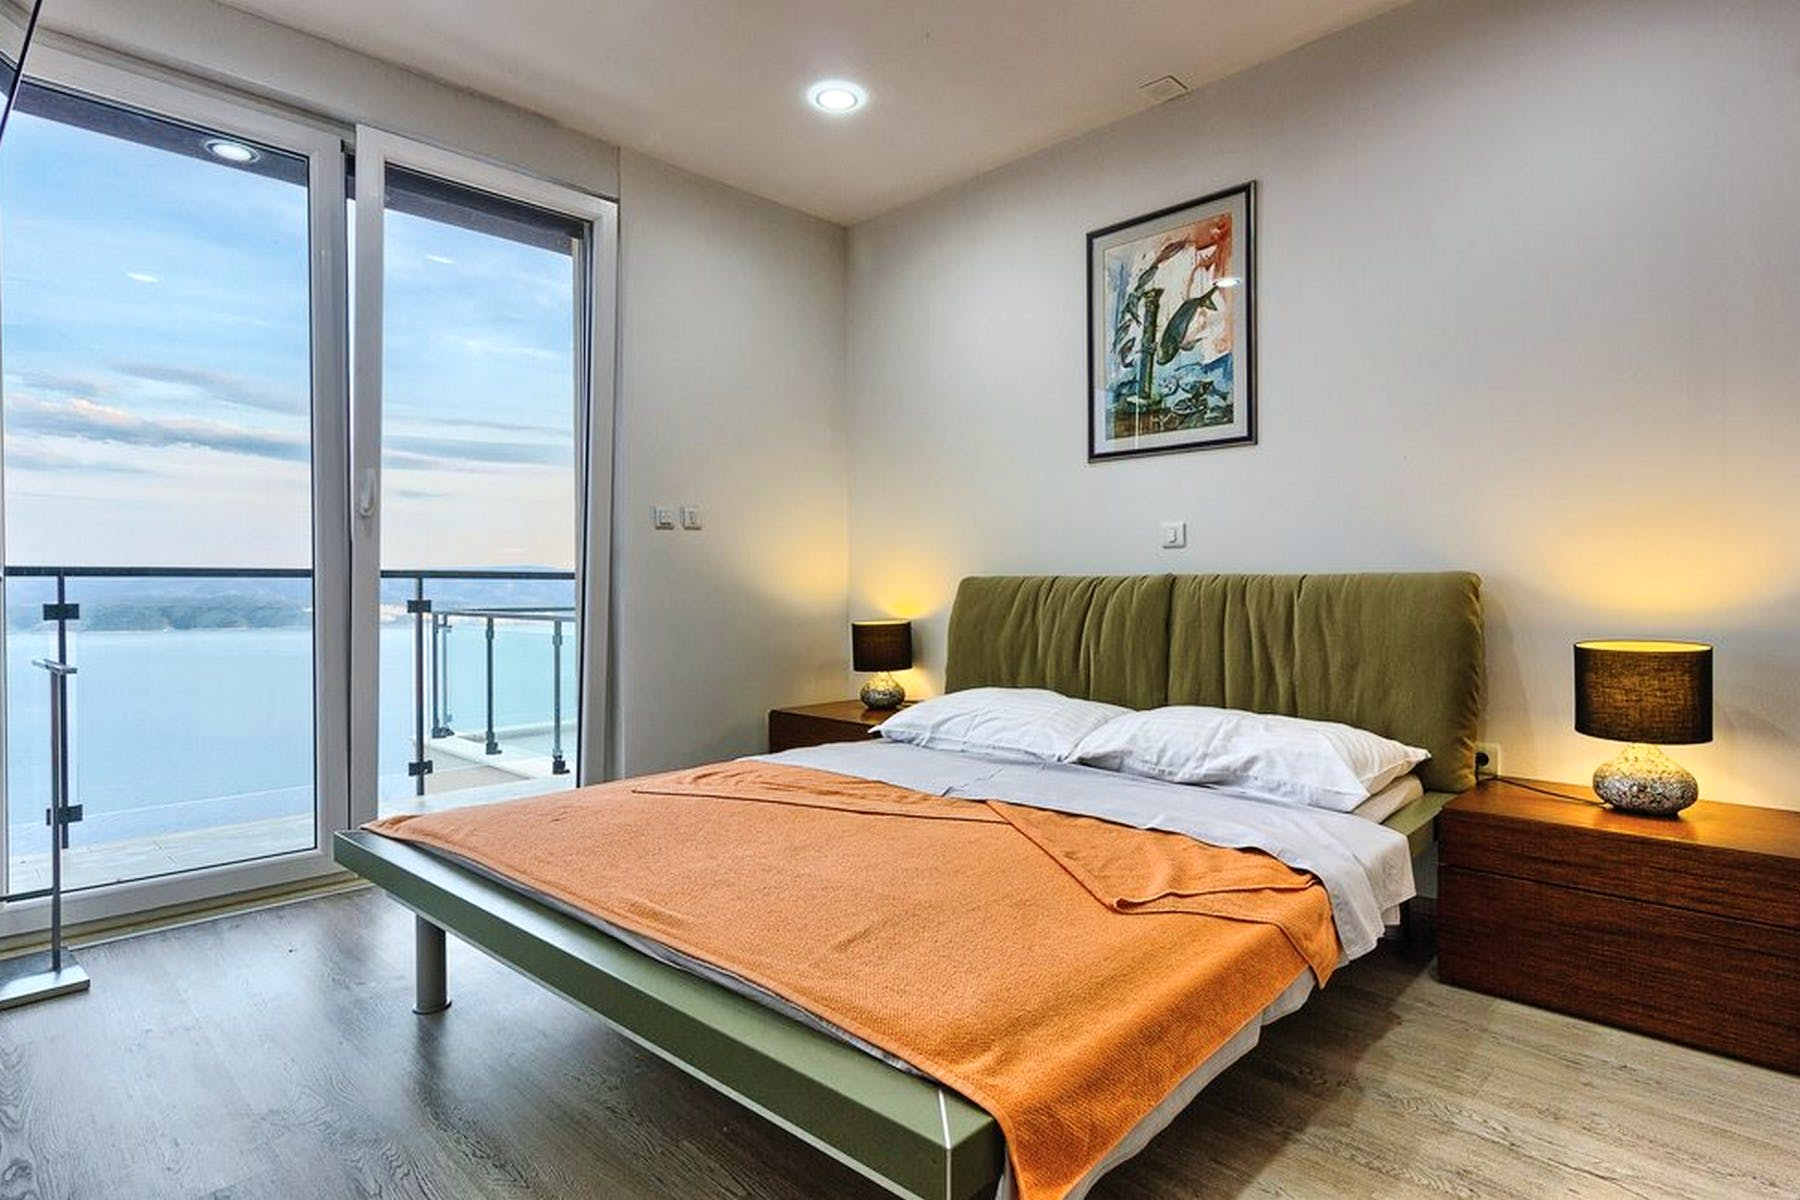 Contemporary ensuite bedroom with open sea view